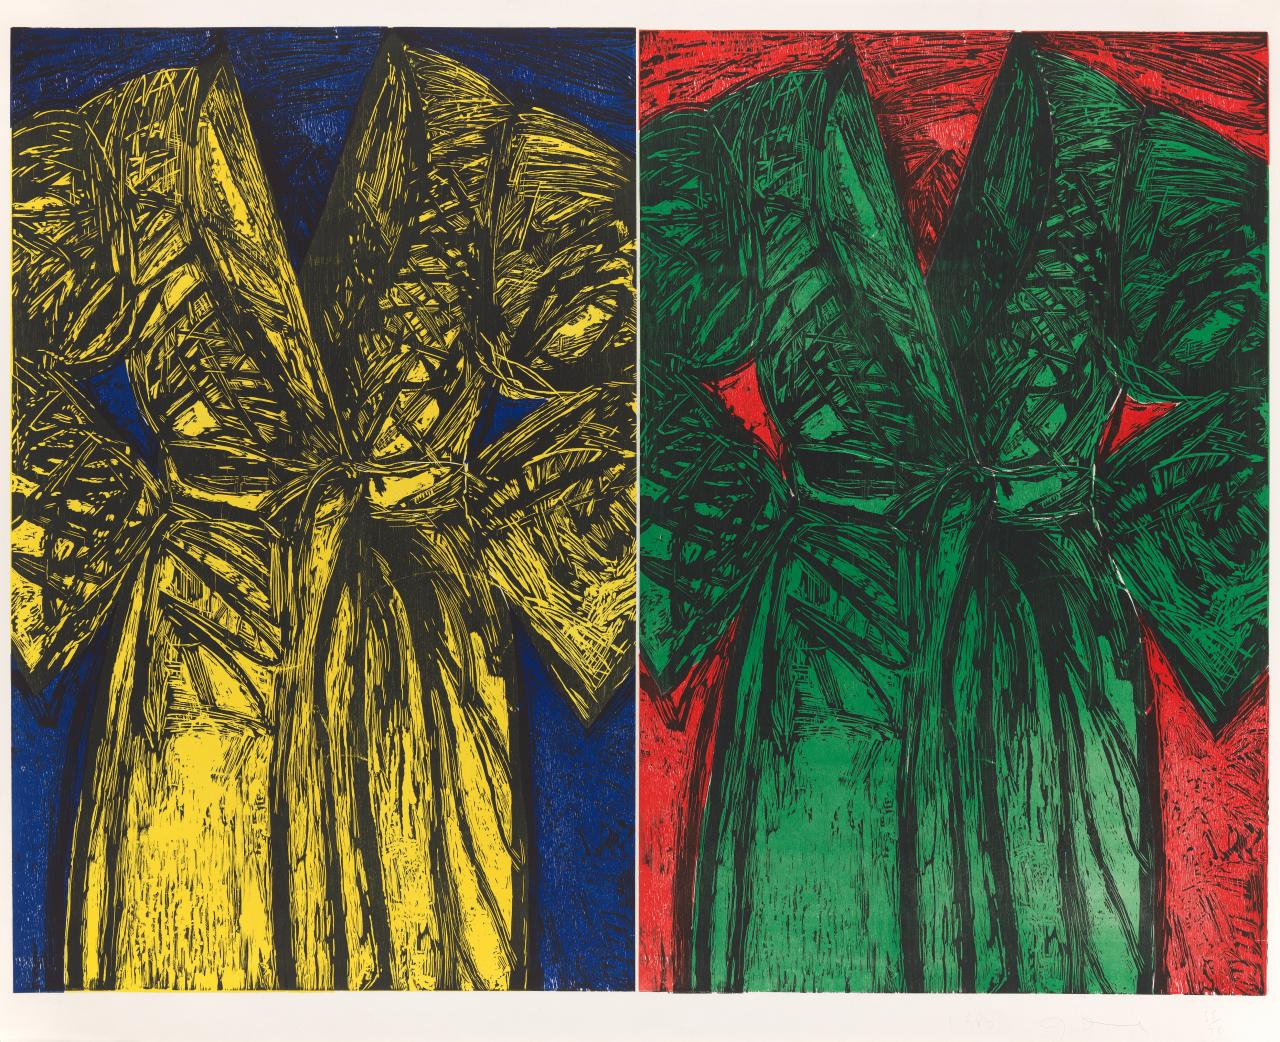 Ngv Reveals 100 Jim Dine Prints Gifted By The Artist Ngv